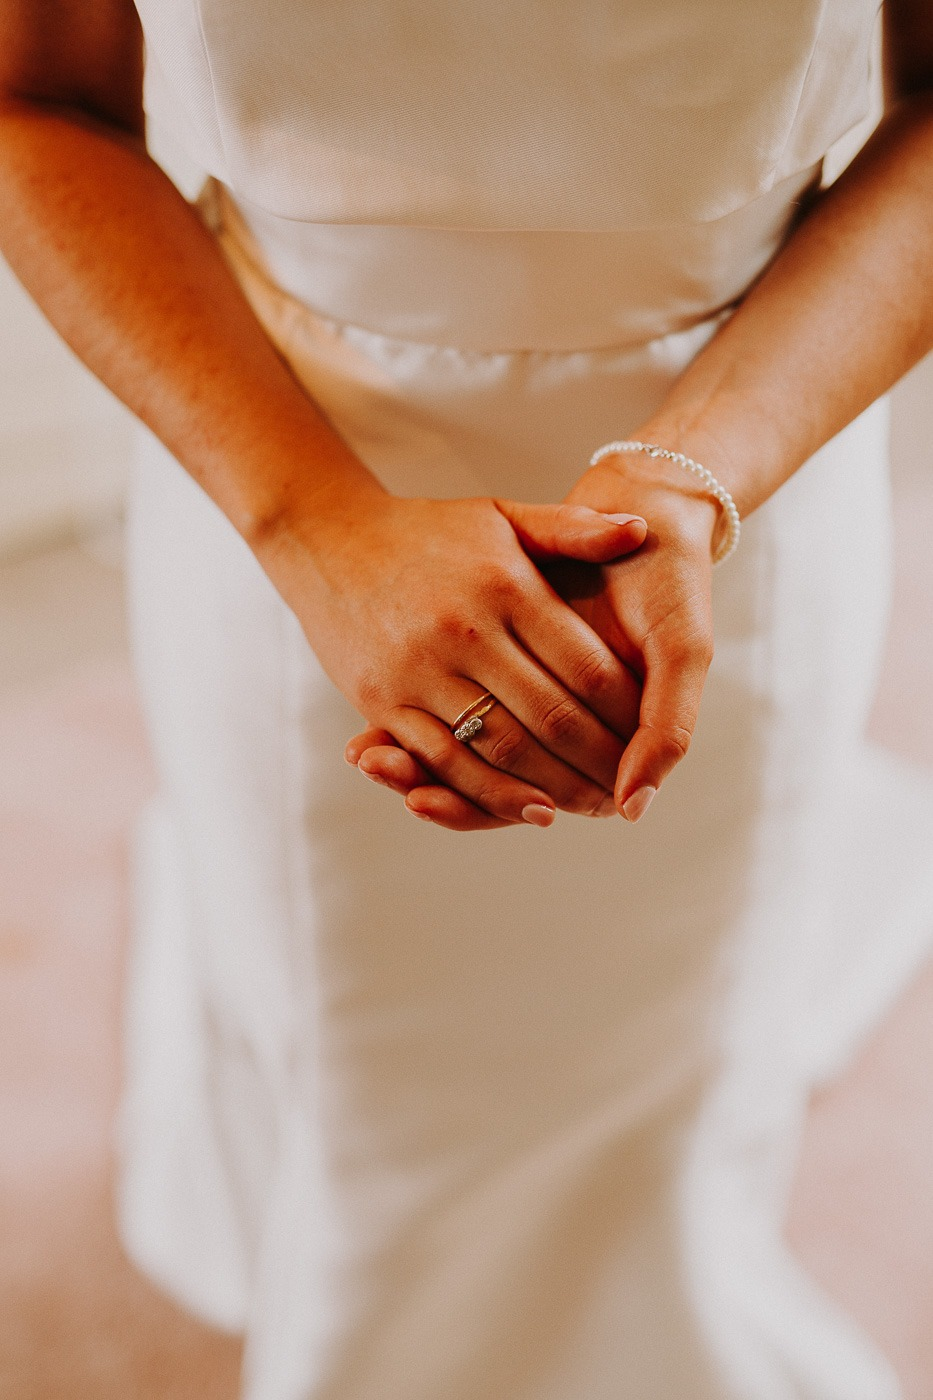 A hand holding a piece of paper